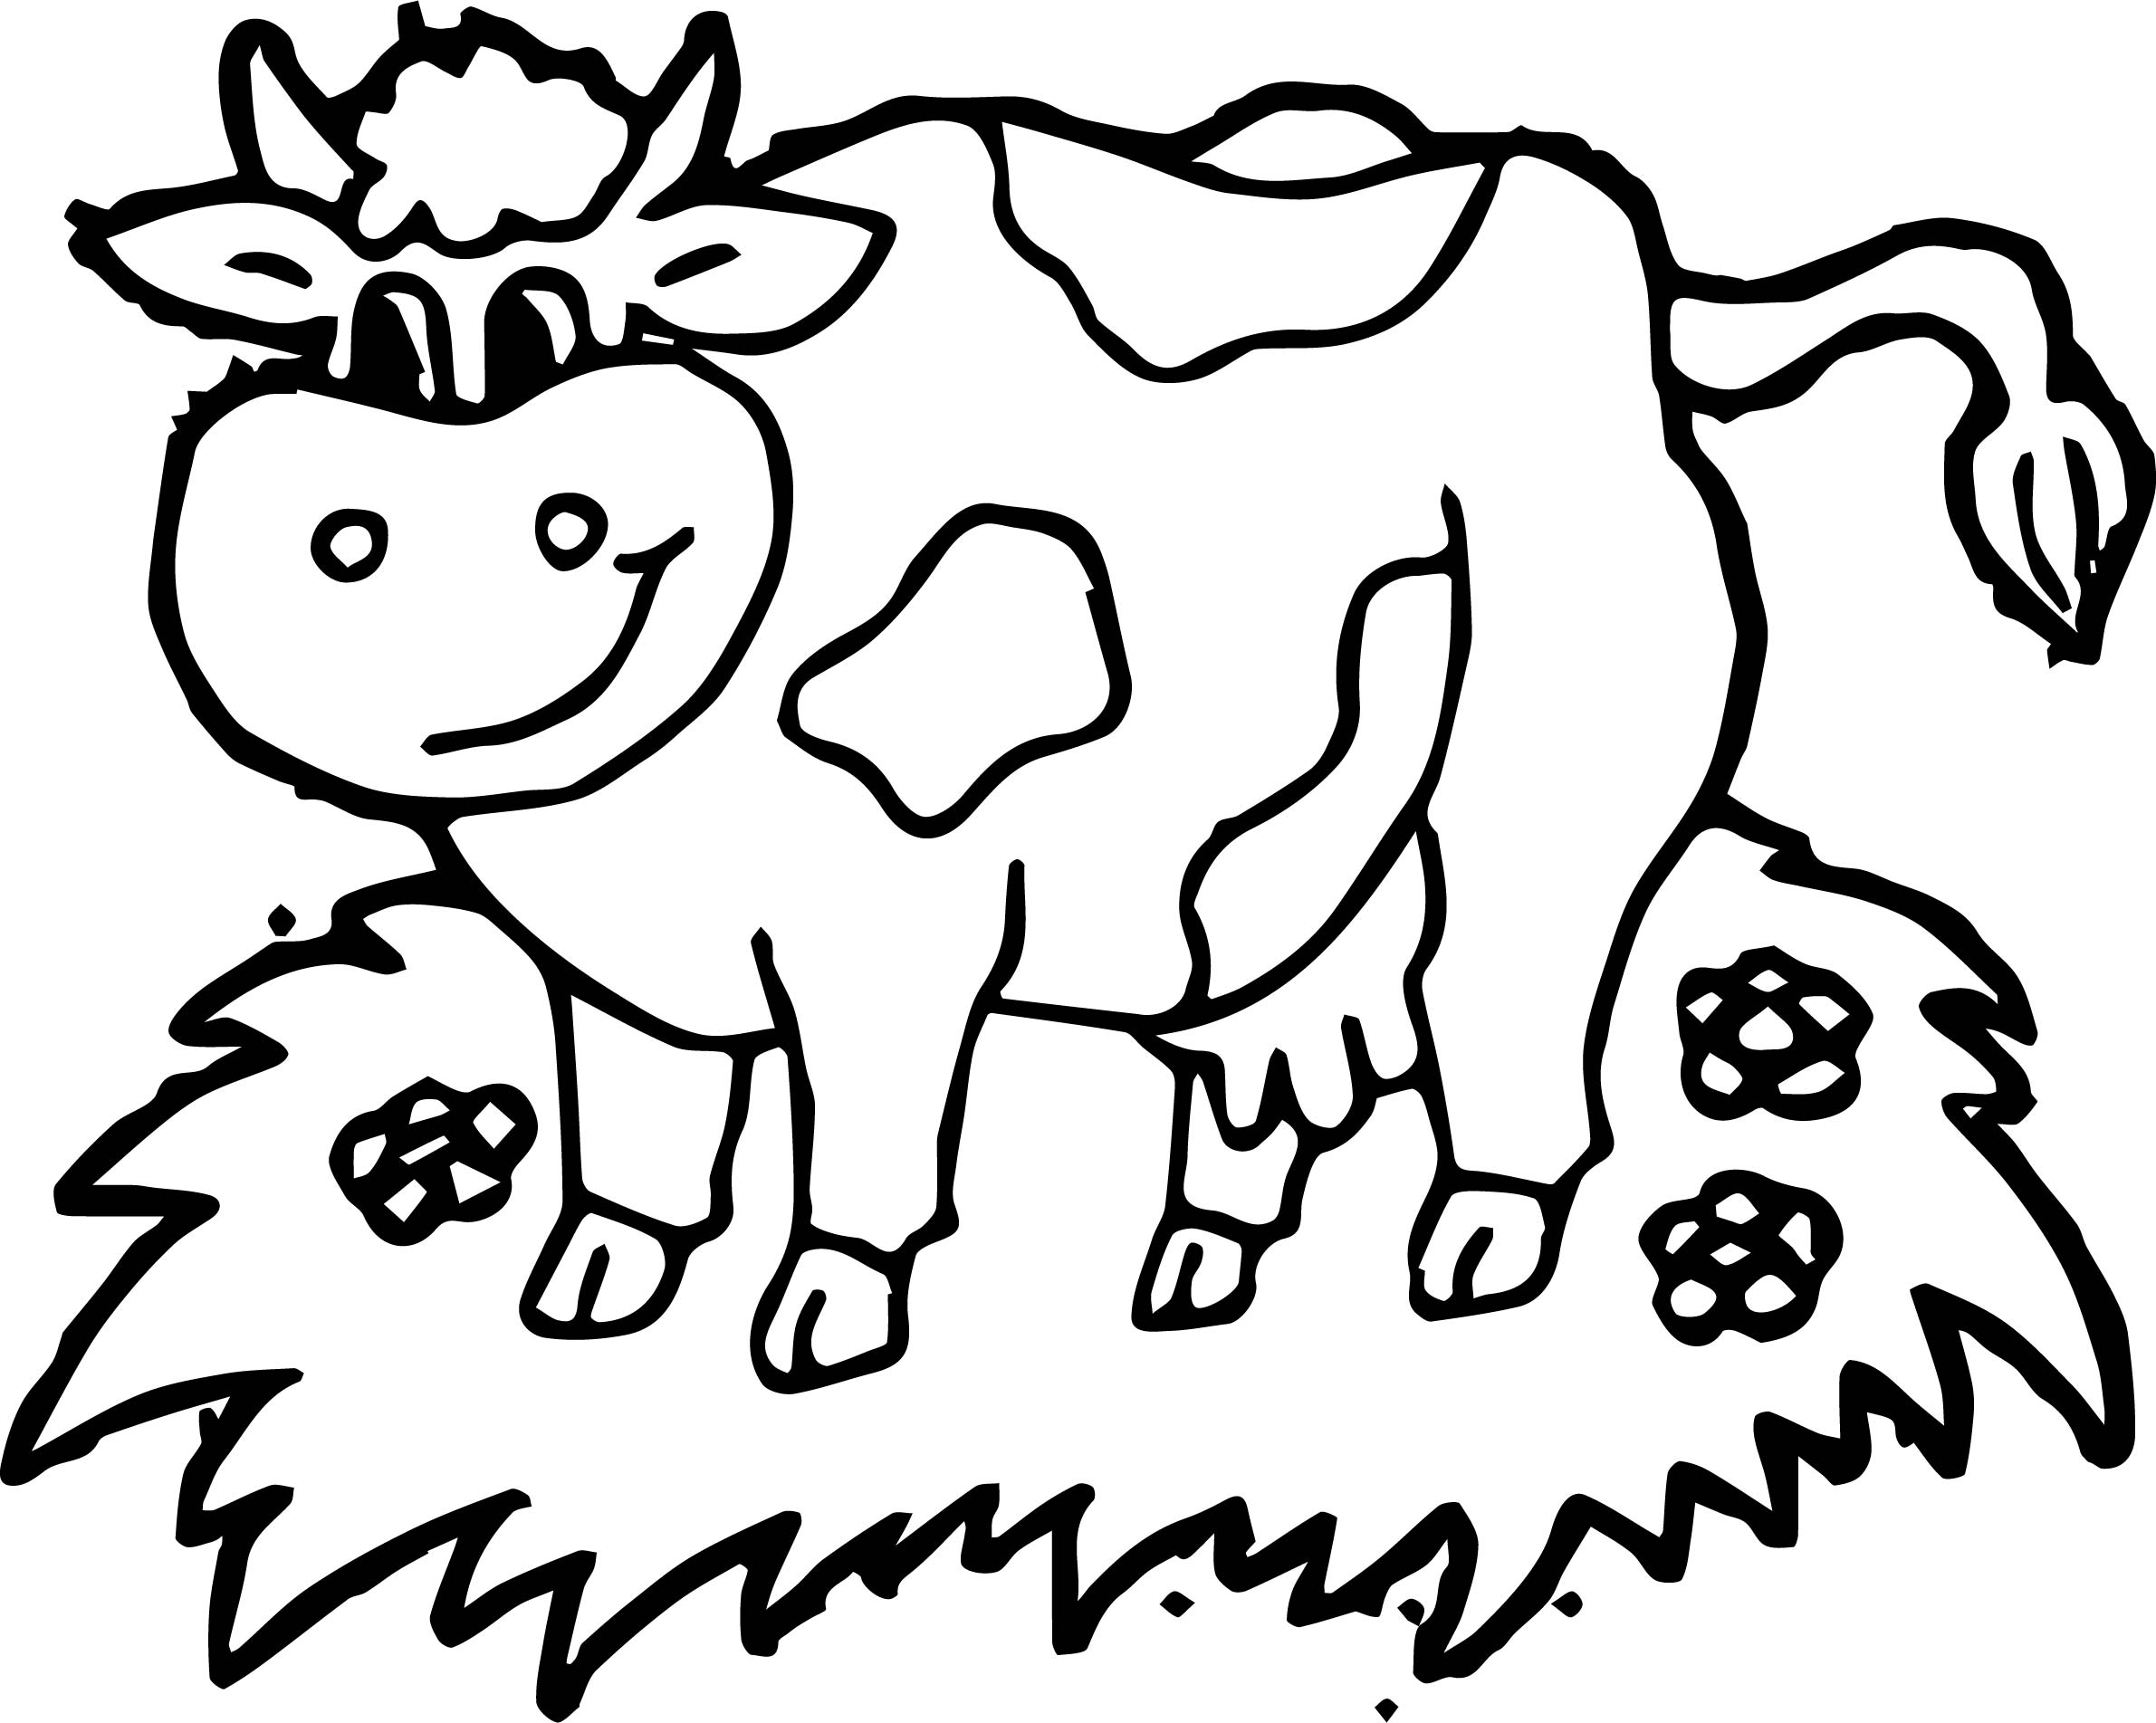 farm yard animal cow coloring page - Cow Coloring Page